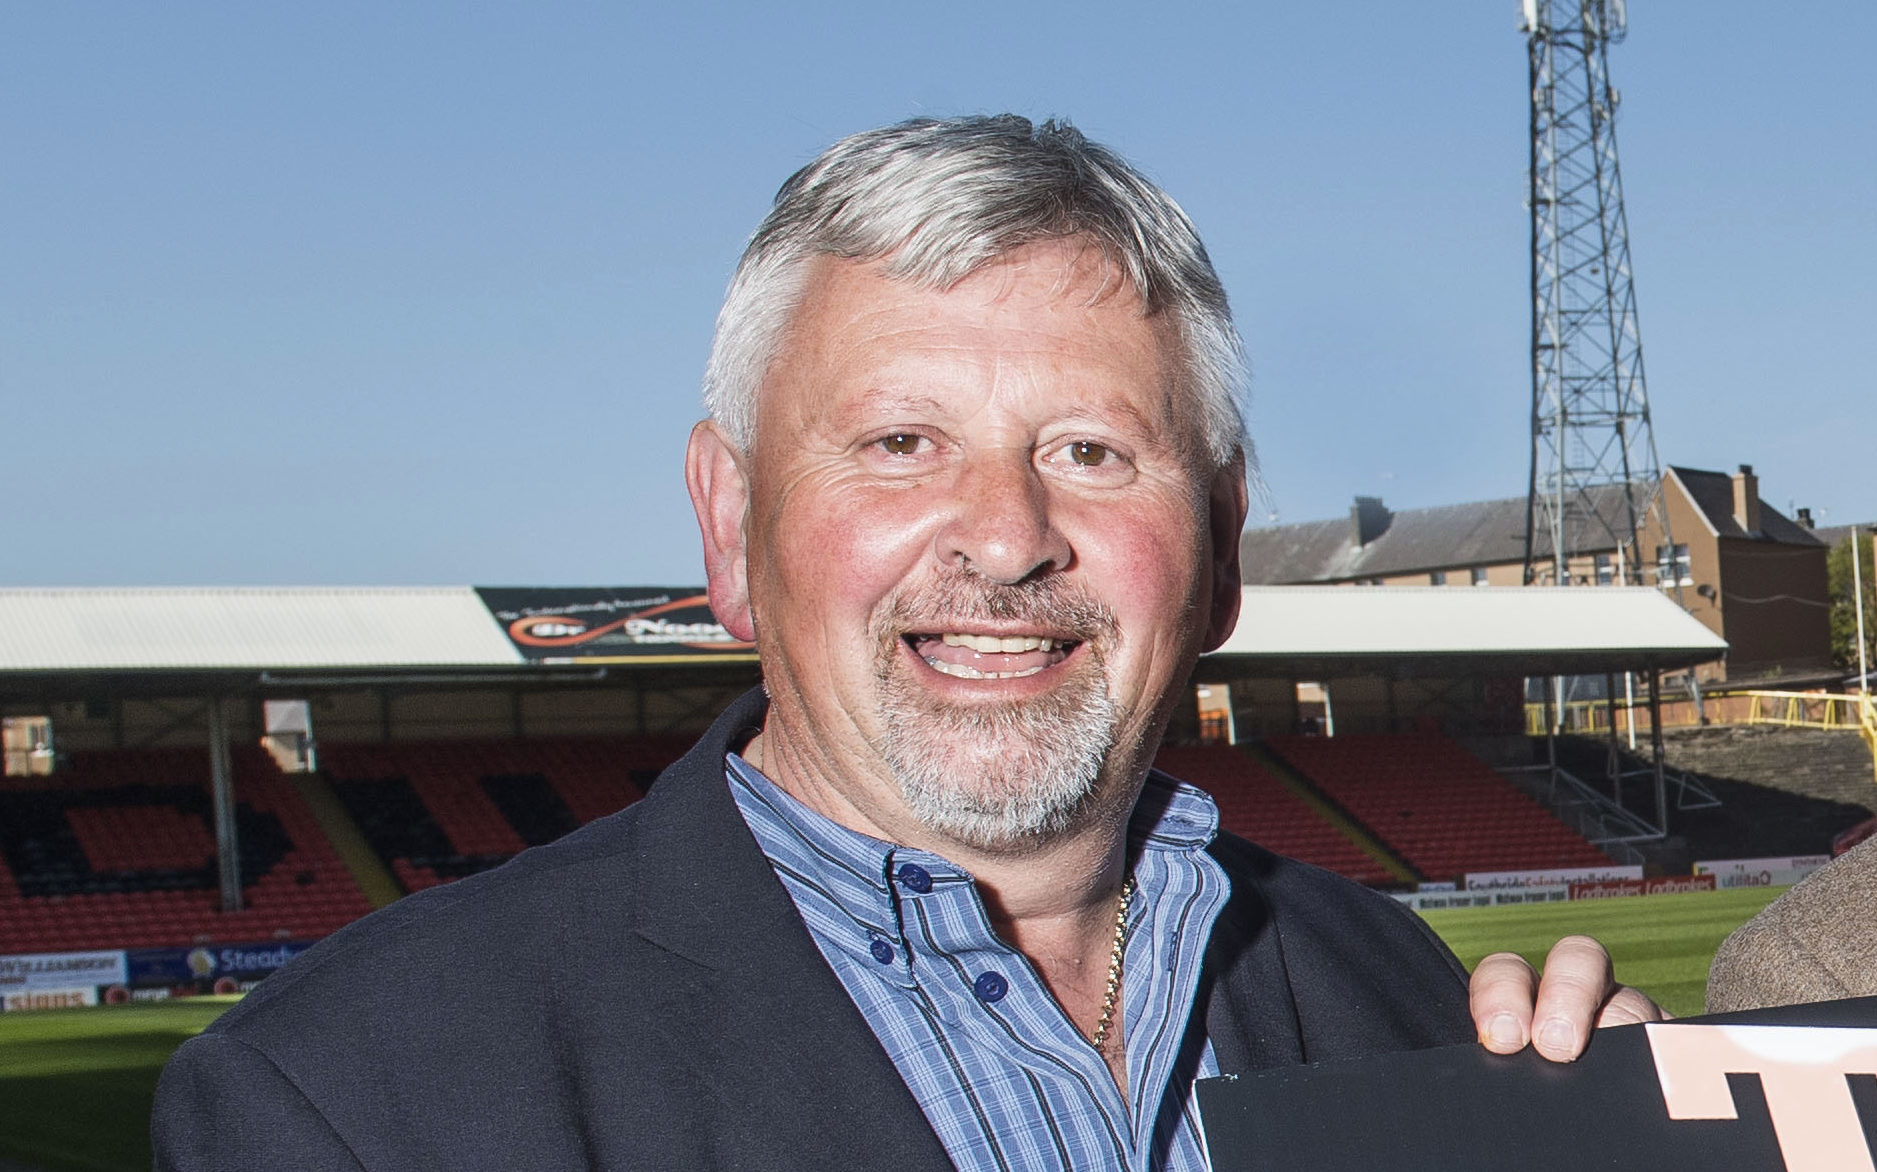 Dundee United legend Paul Sturrock has returned to the club for a brief coaching role